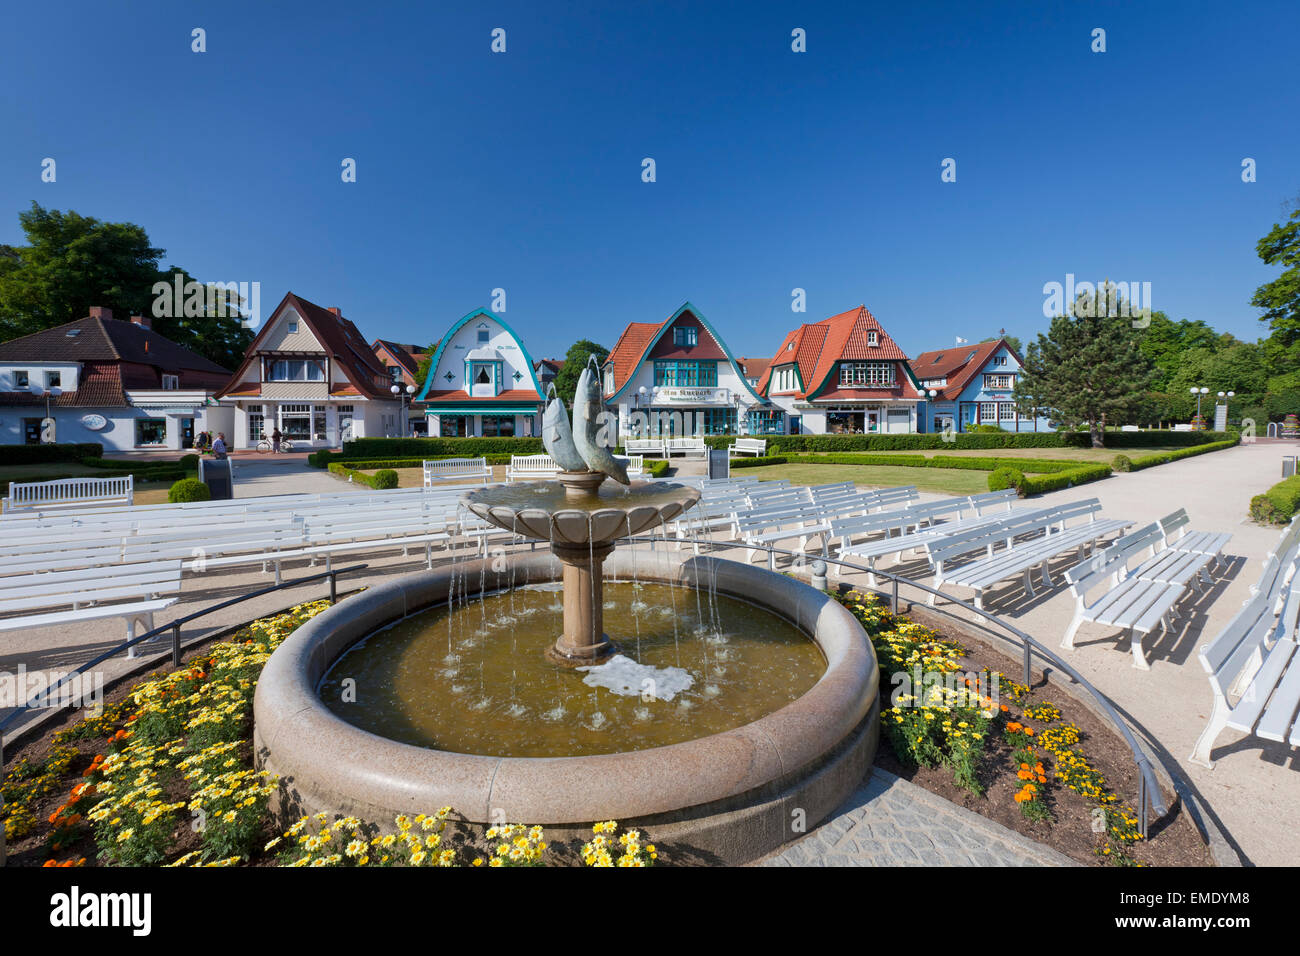 Fountain and benches in the spa garden at seaside resort Boltenhagen, Mecklenburg-Vorpommern, Germany - Stock Image